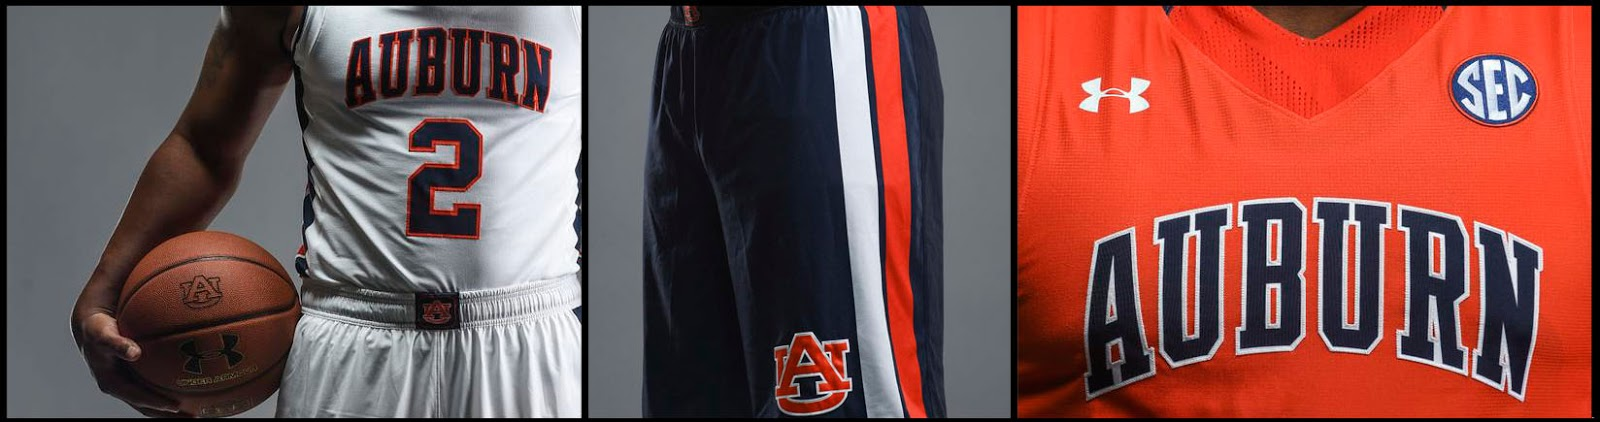 02251245a2d6 You can view previous Auburn basketball uniforms from Under Armour here.